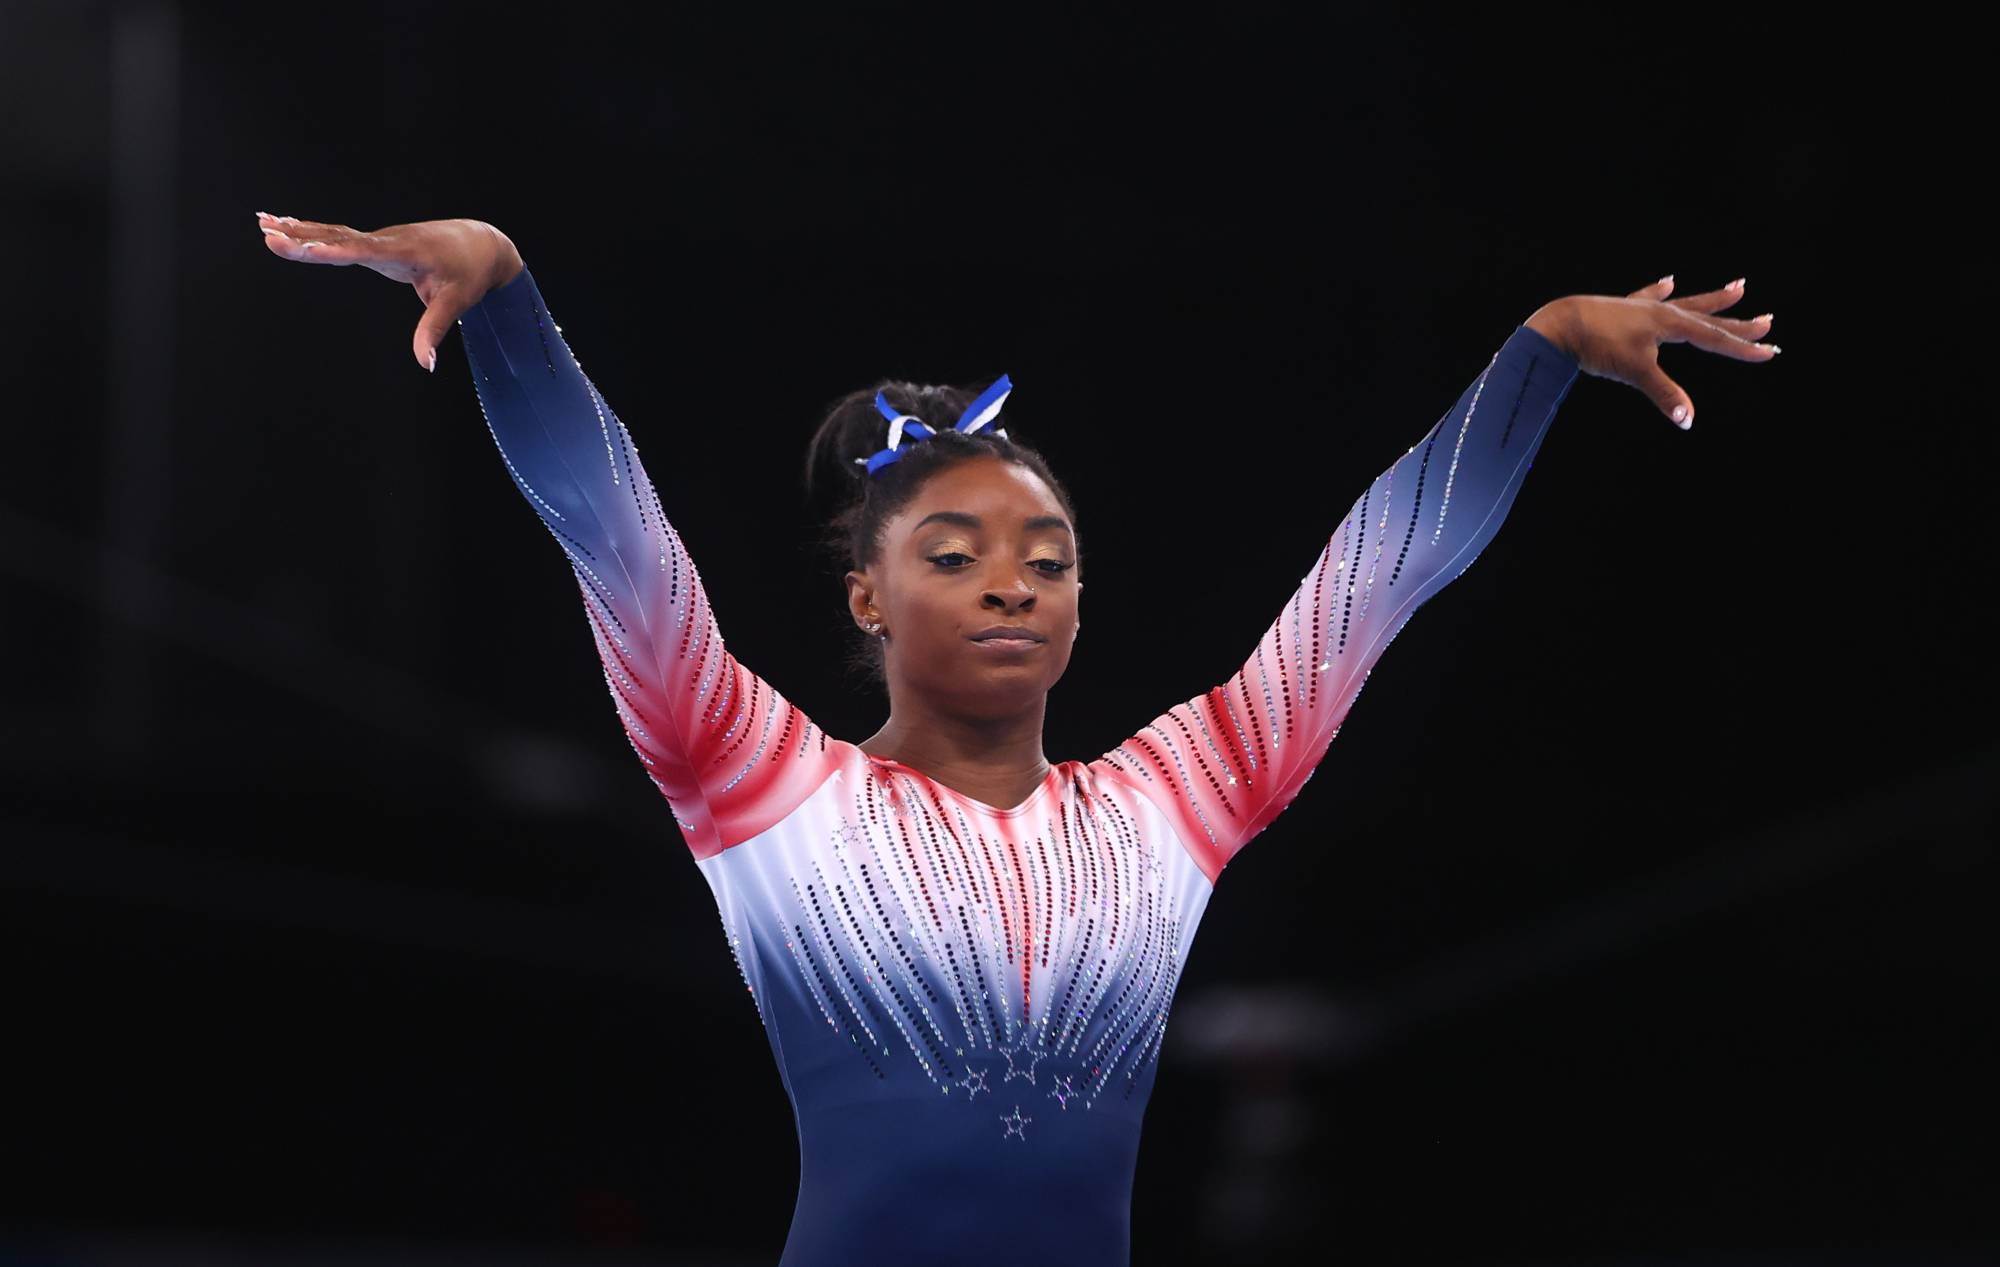 Simone Biles of the United States in action on the balance beam on Tuesday at Ariake Gymnastics Centre in Tokyo.   REUTERS